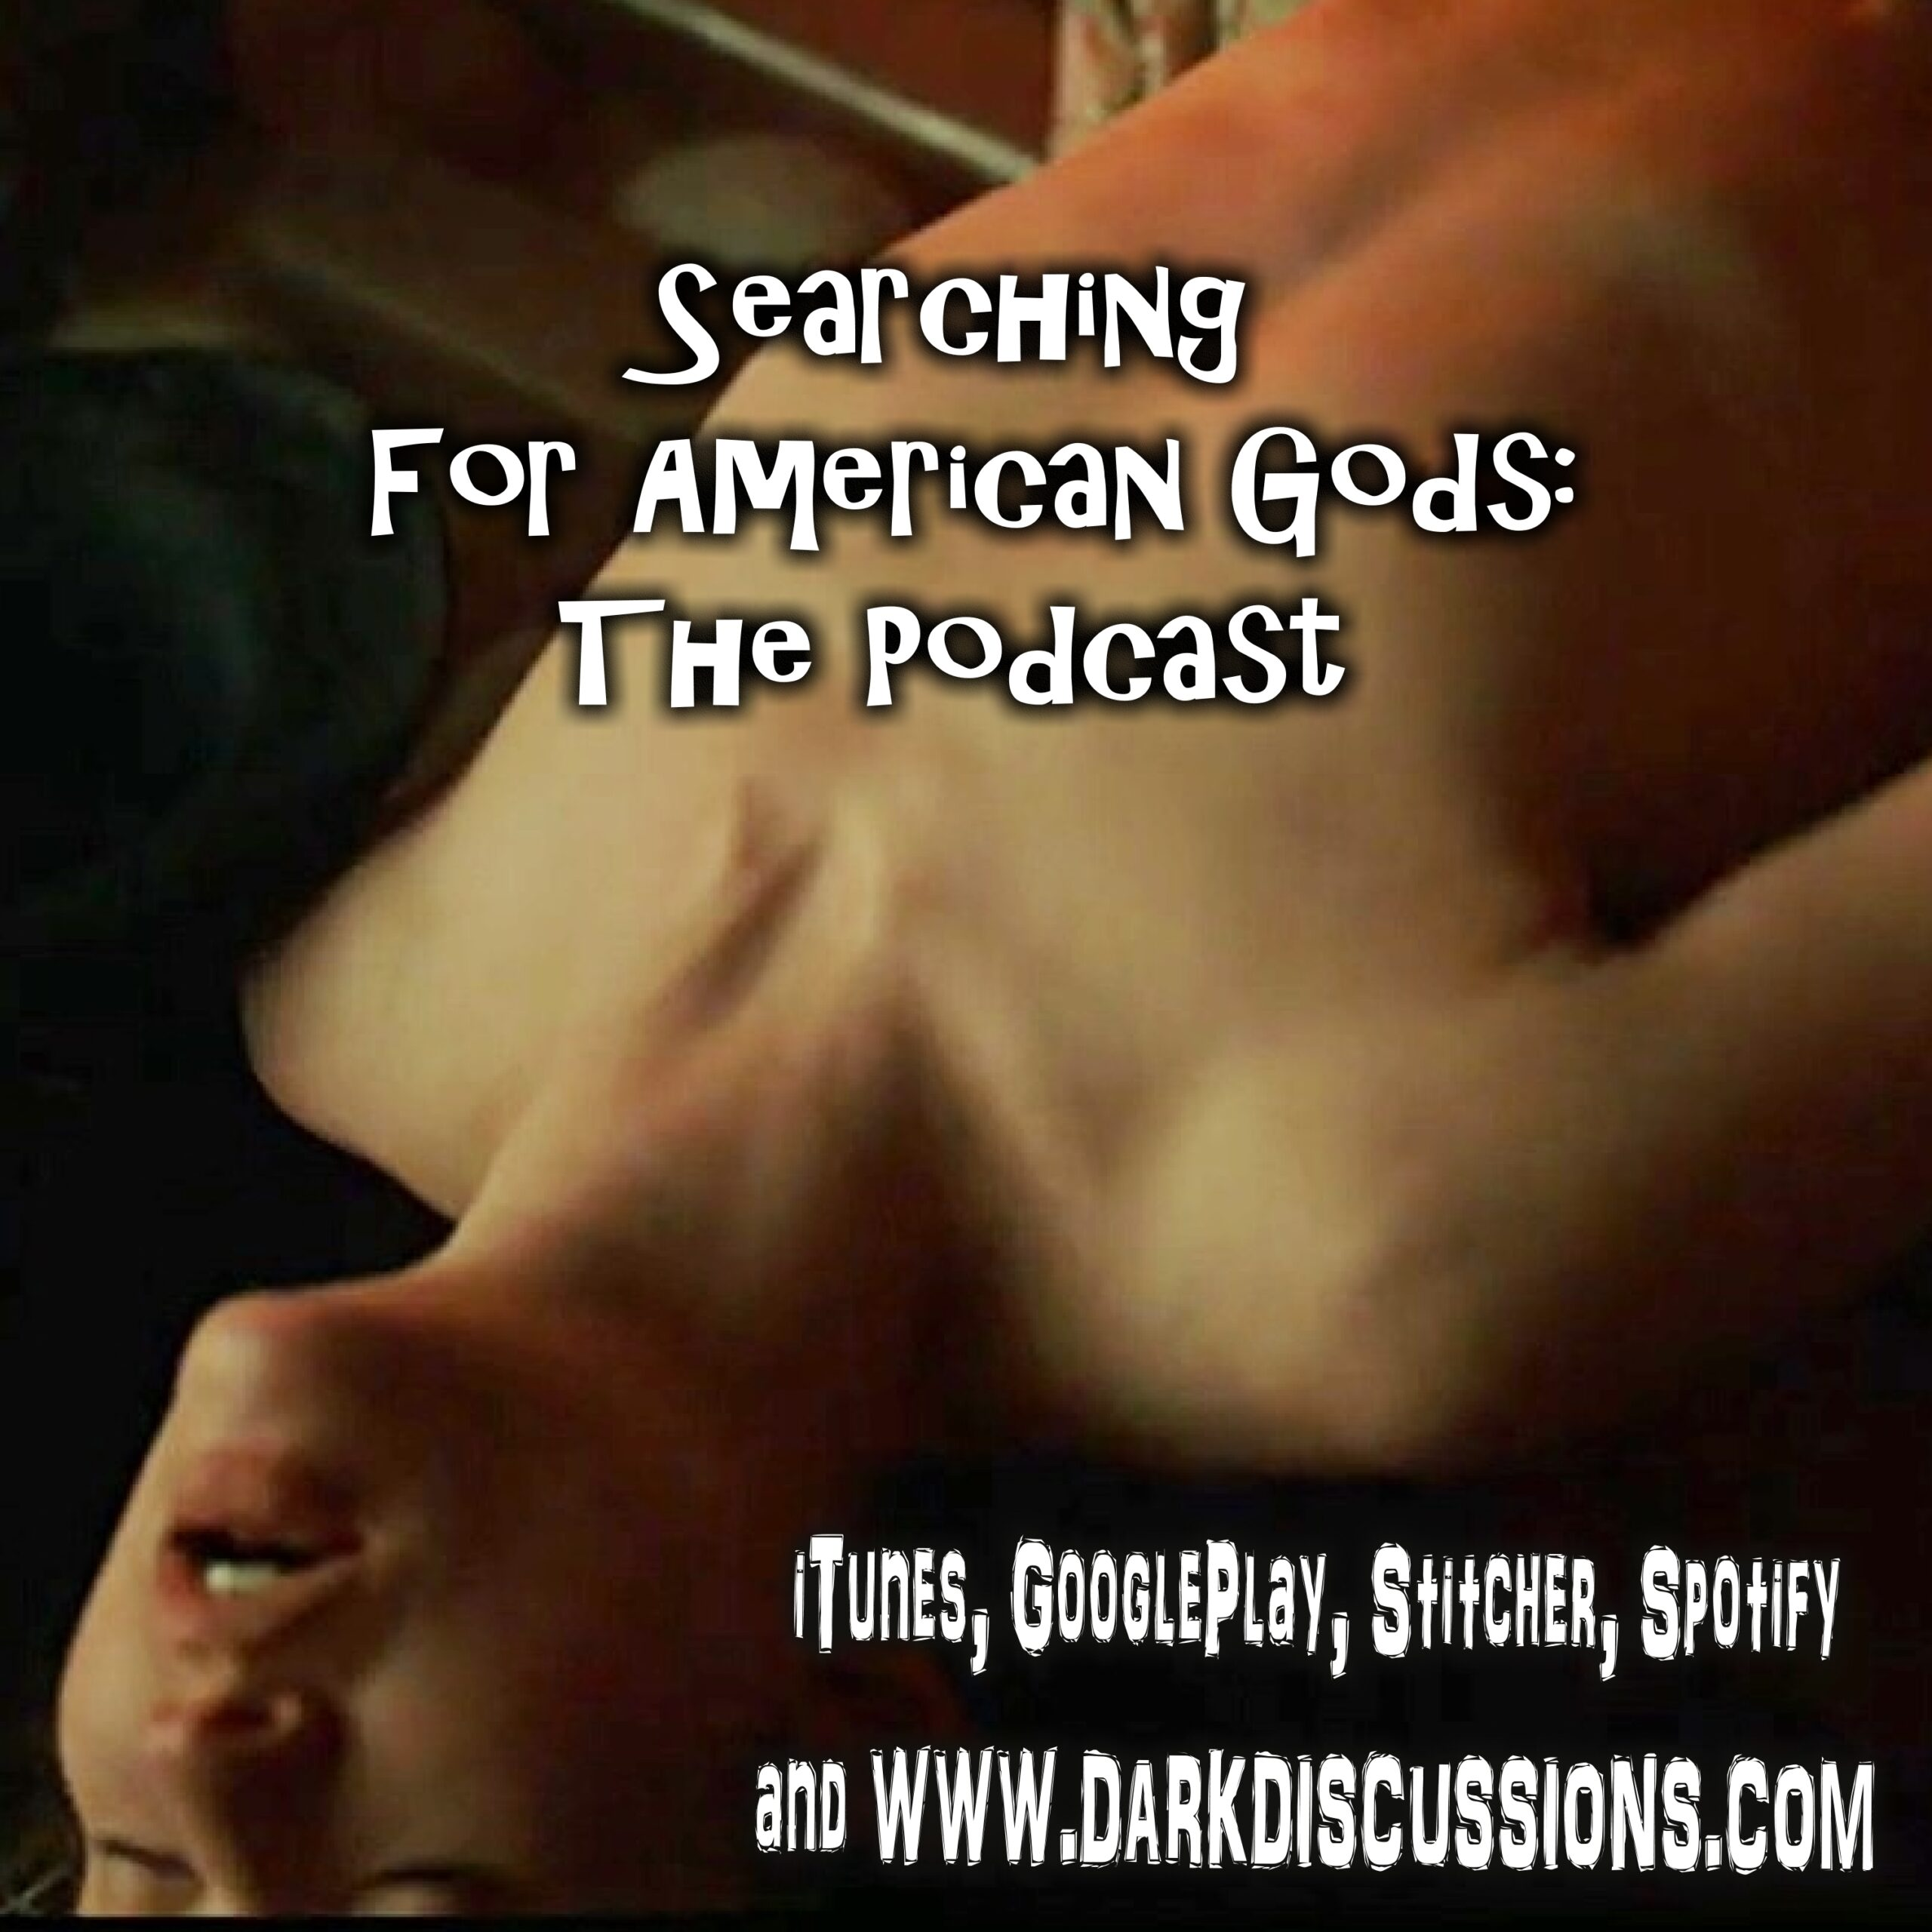 Searching For American Gods Podcast – Episode S01E01 – The Bone Orchard